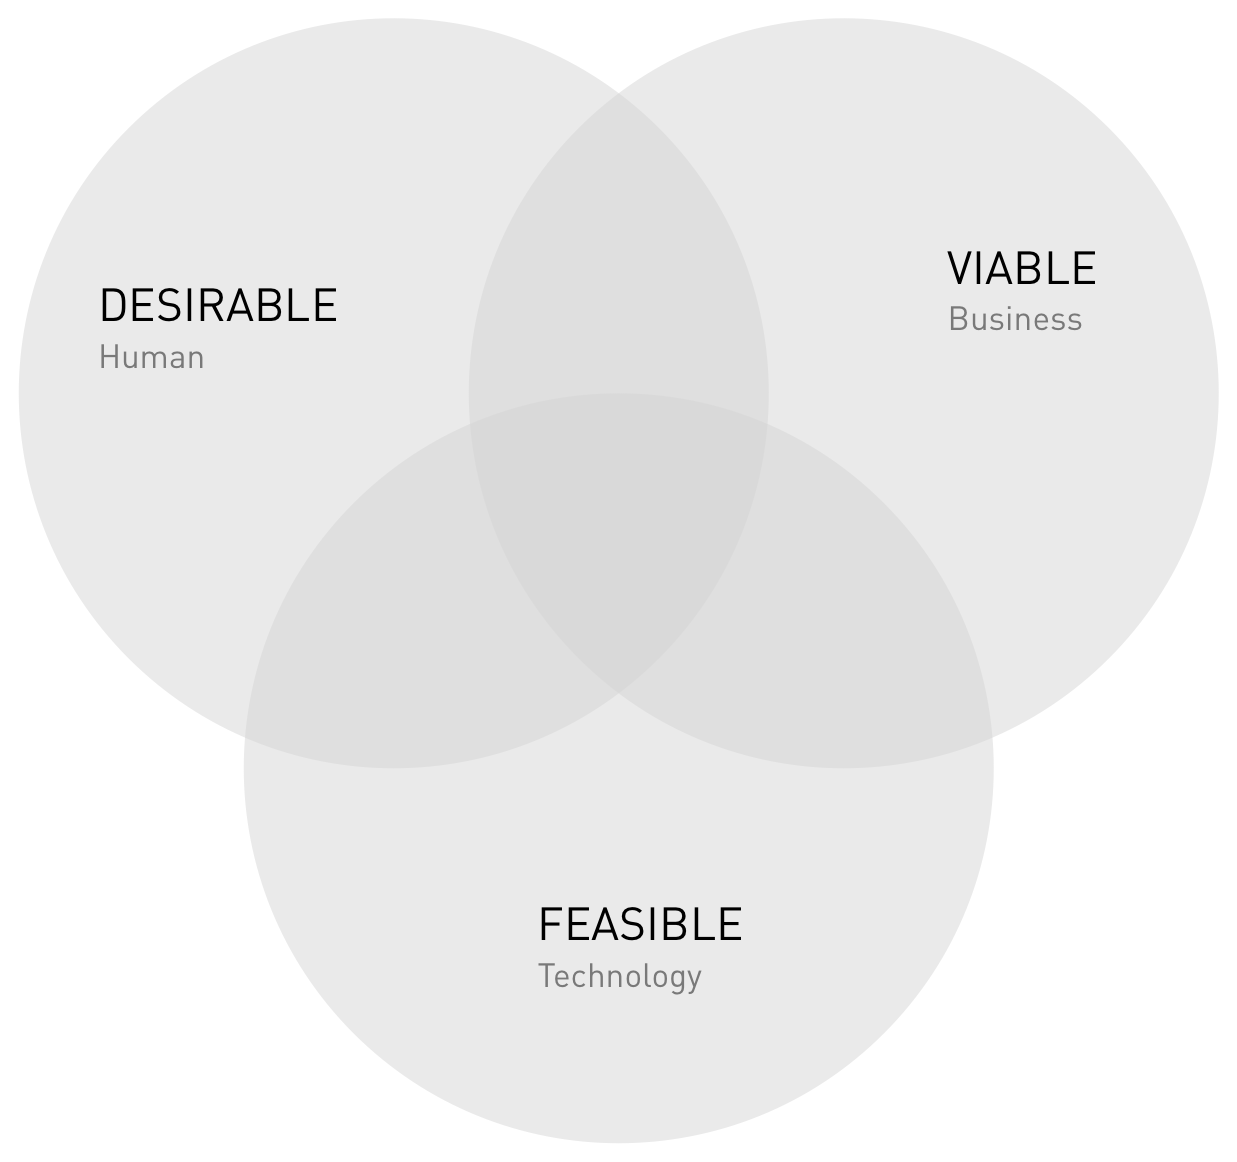 how to make a business more viable